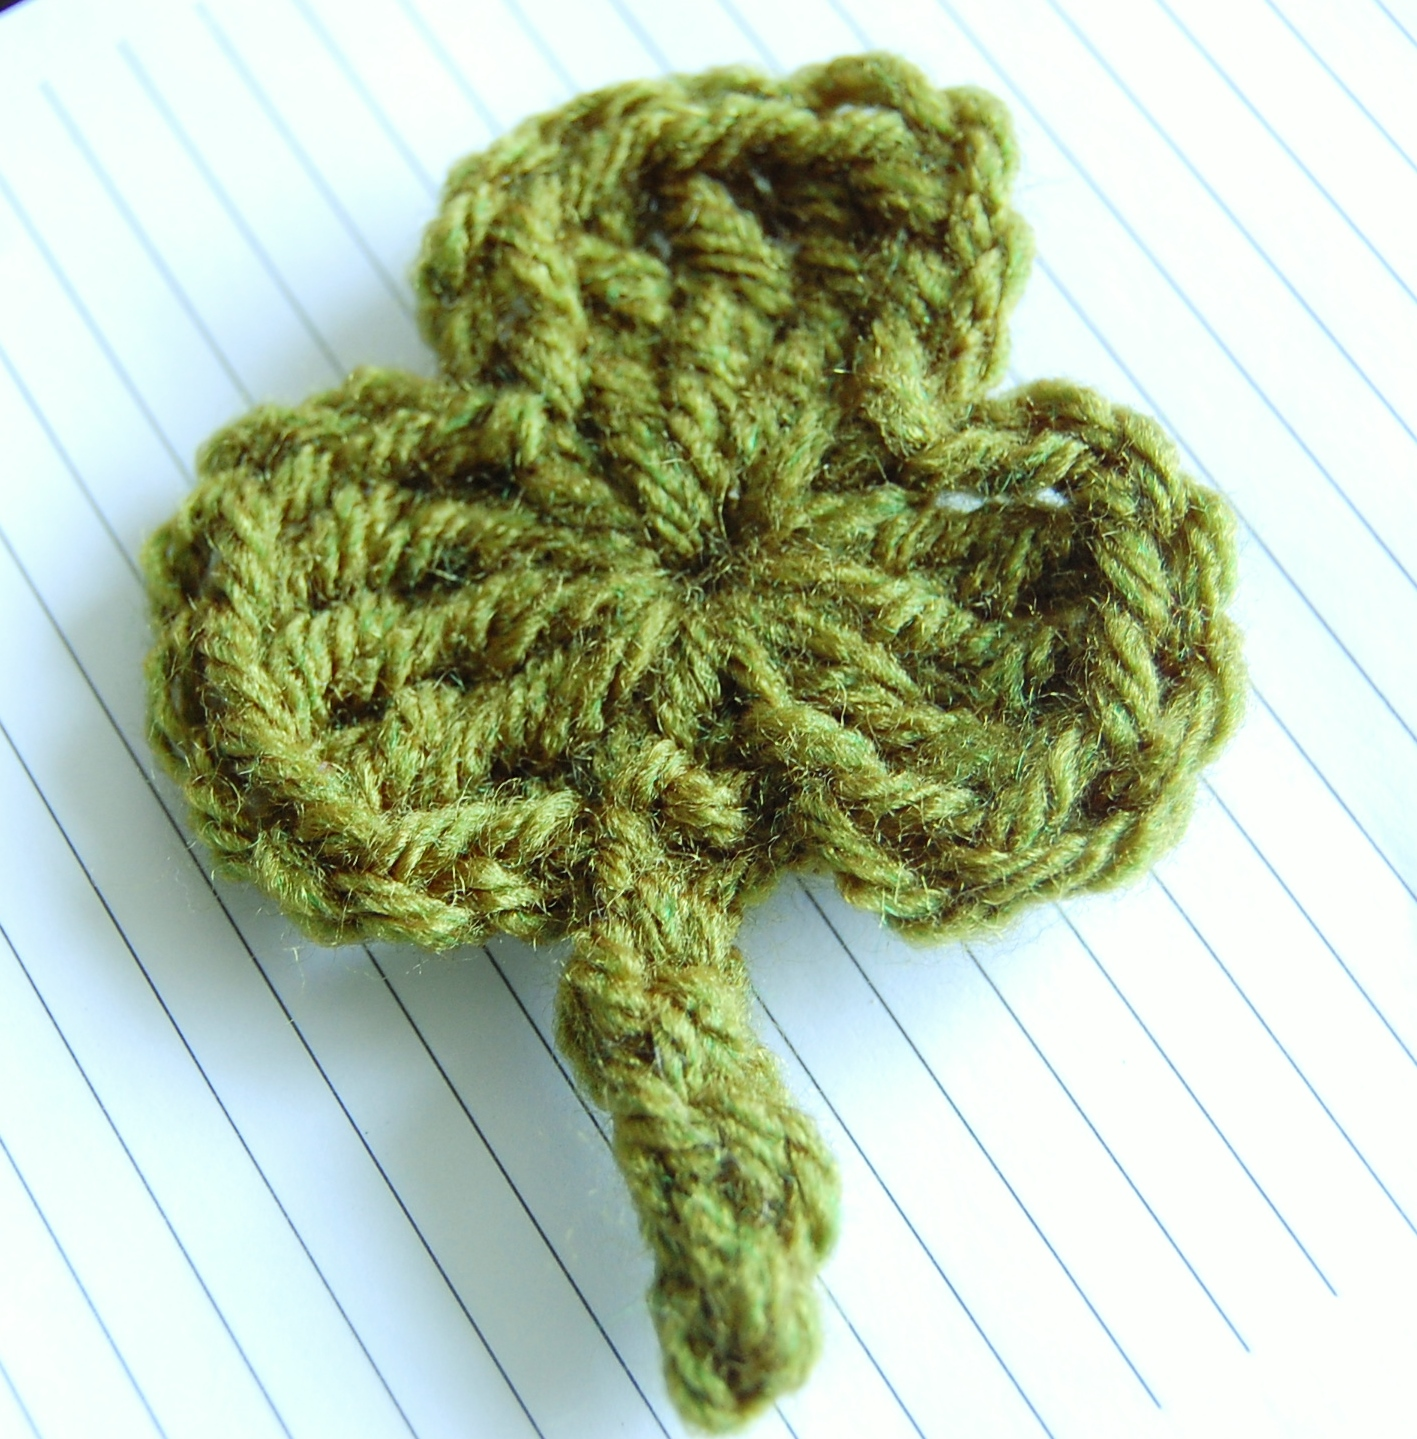 Crocheting Free Patterns : Crochet Shamrock Pattern - Free